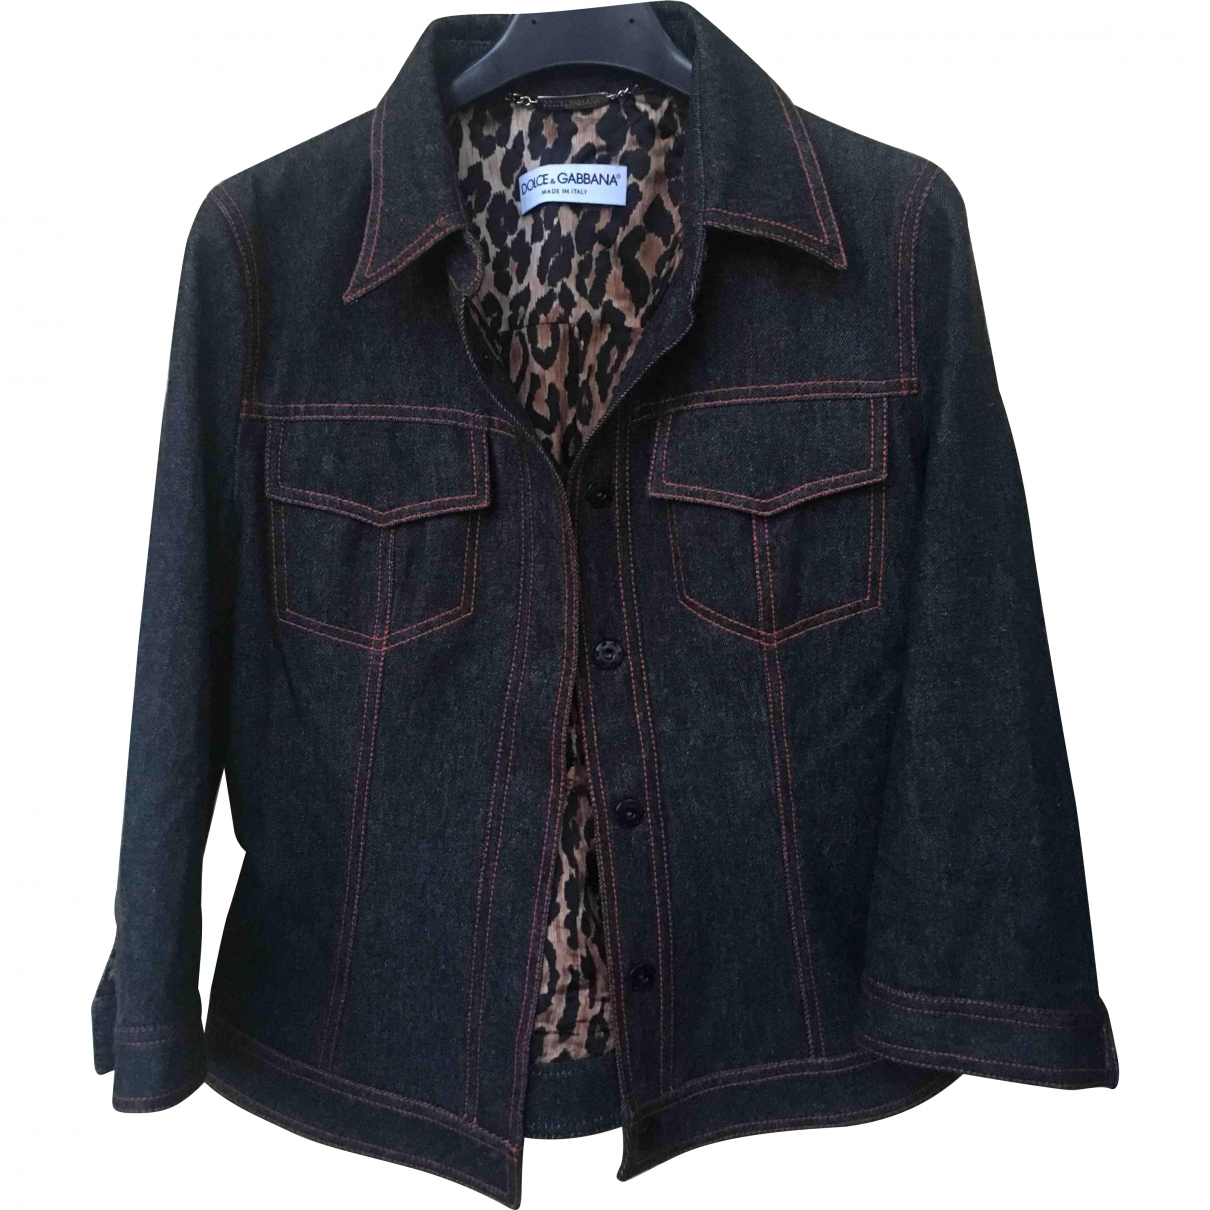 Dolce & Gabbana \N Blue Denim - Jeans jacket for Women 42 IT